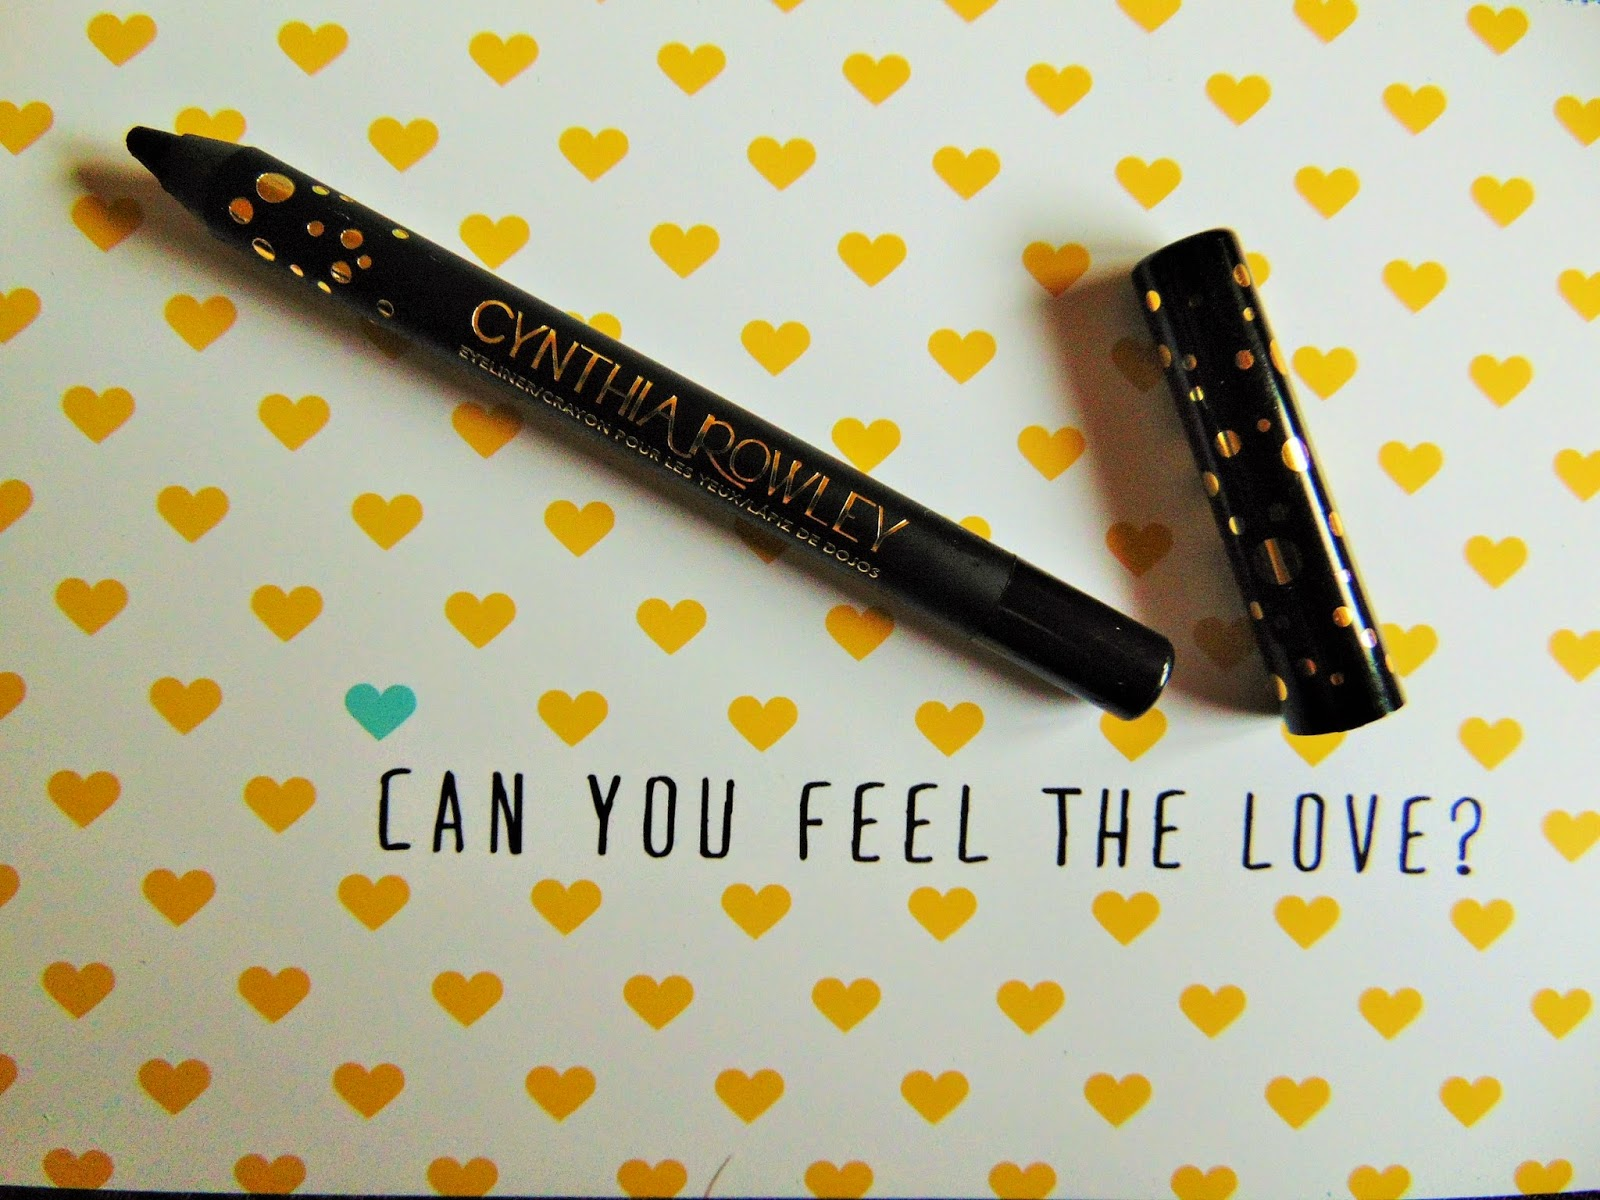 Birch Box February cynthia rowley eyeliner